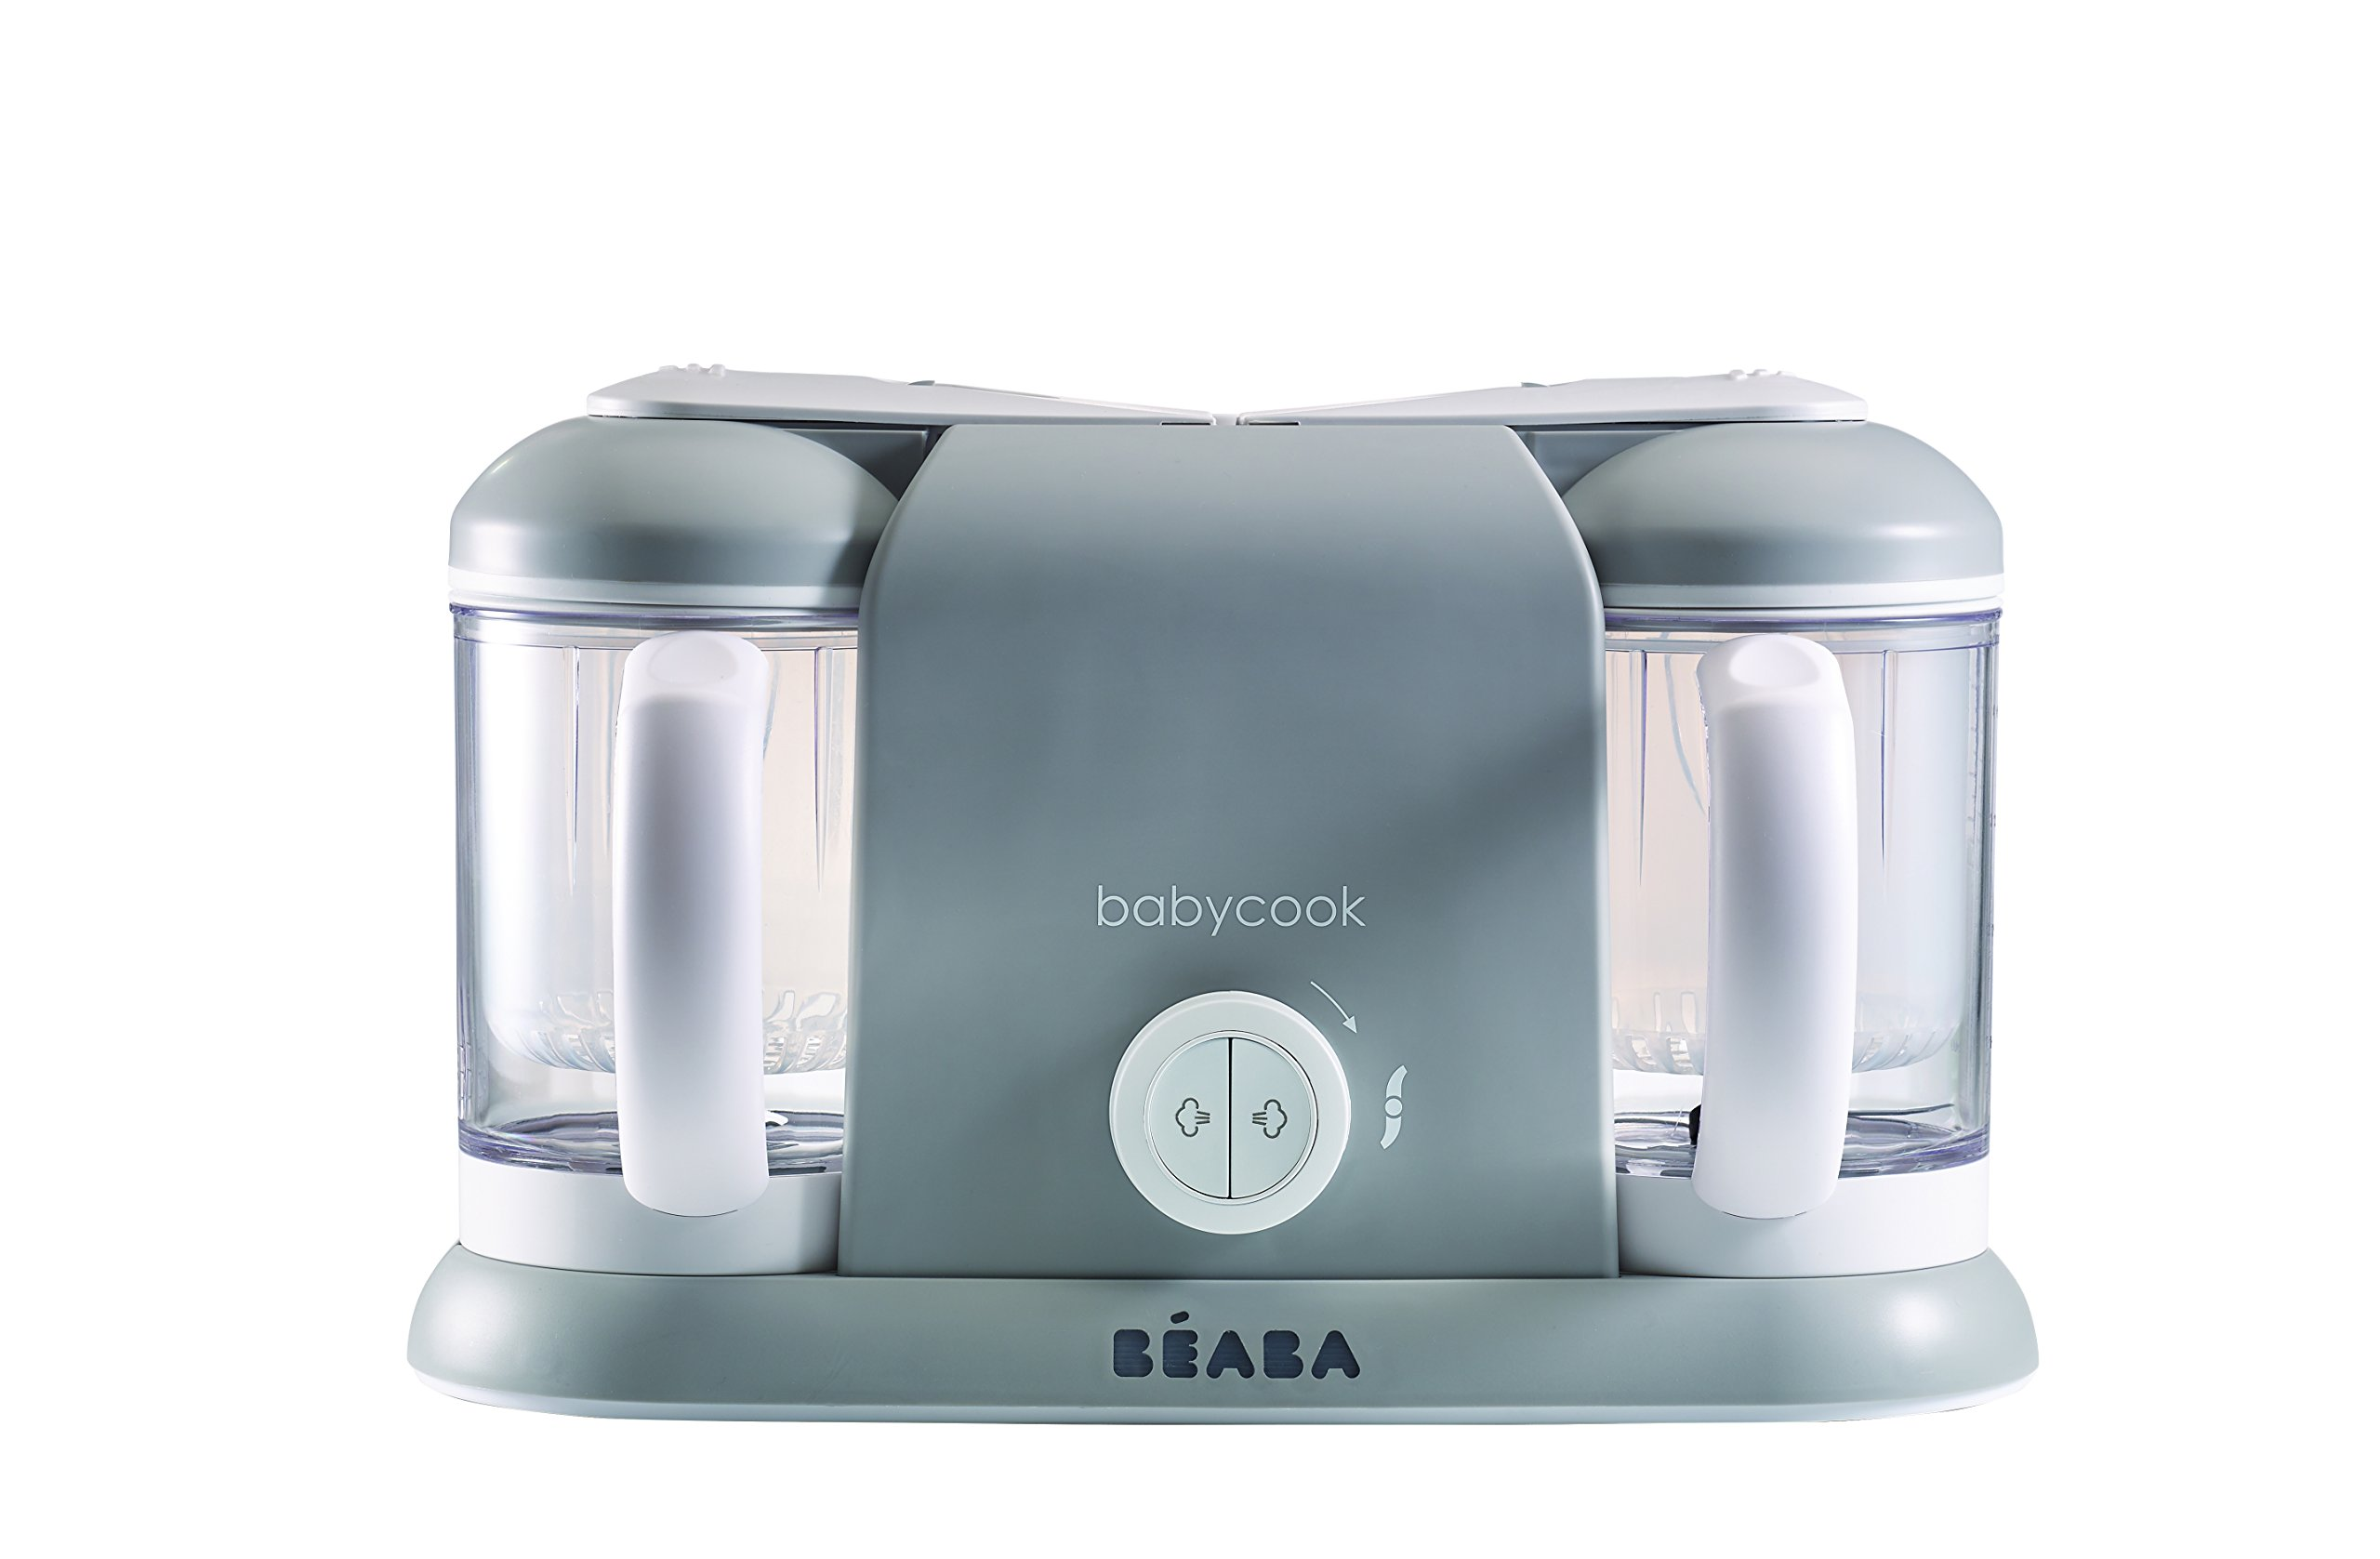 BEABA Babycook Plus 4 in 1 Steam Cooker and Blender, 9.4 cups, Dishwasher Safe, Cloud by Beaba (Image #1)